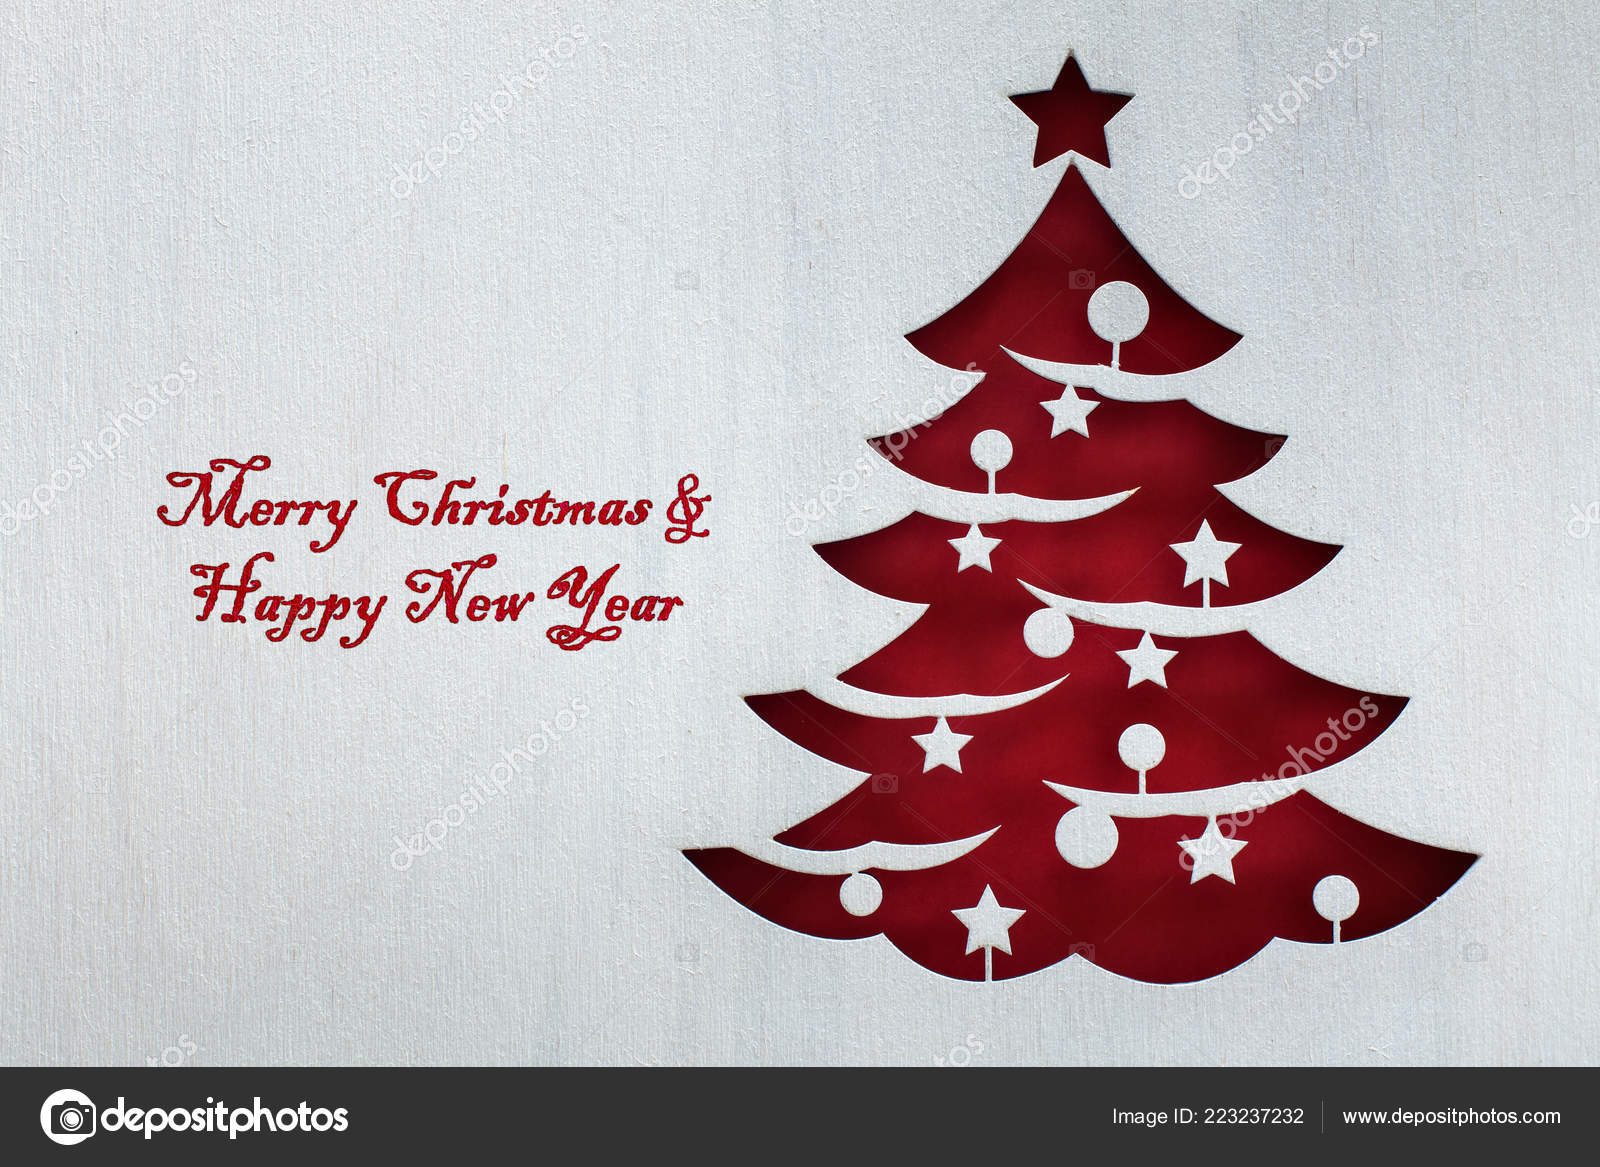 Christmas Tree Cutout.Red Christmas Tree Cutout White Wooden Board Rough Texture